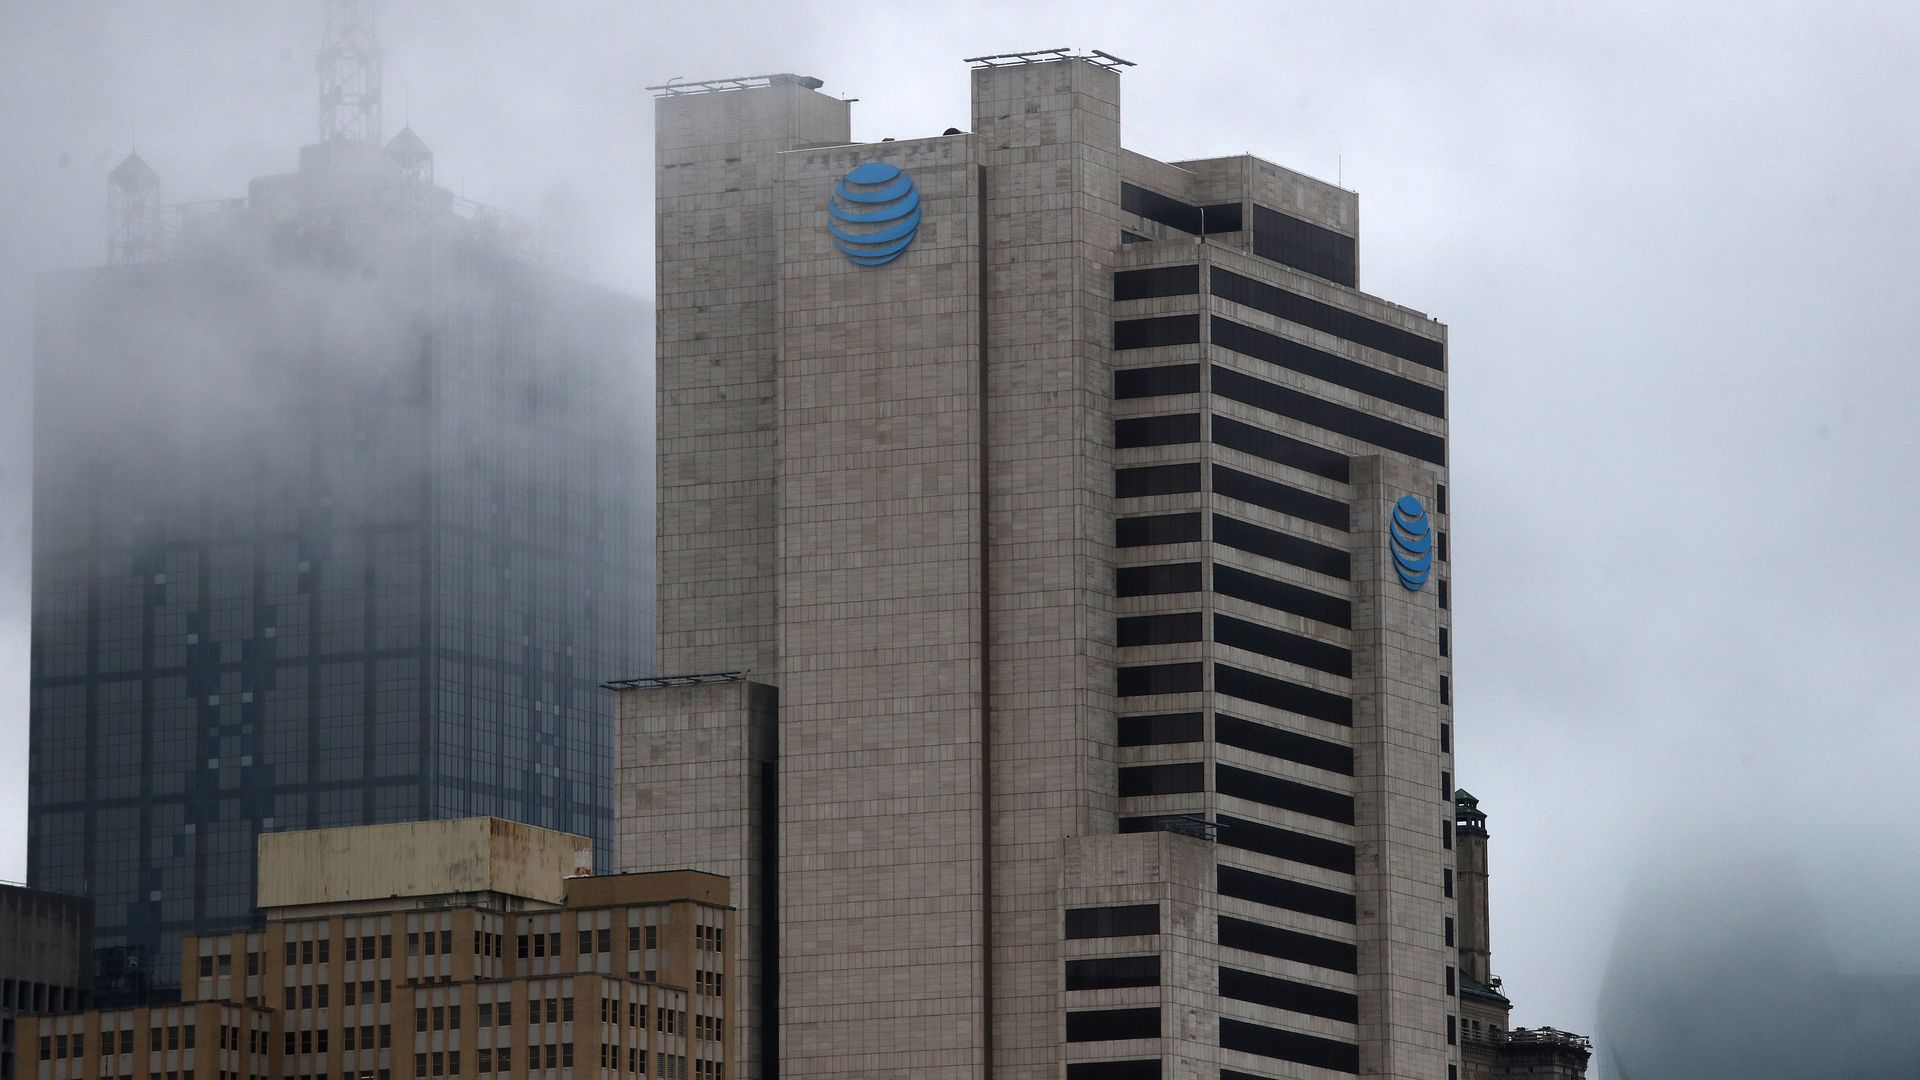 The AT&T building in downtown Dallas, immersed in a creeping fog.